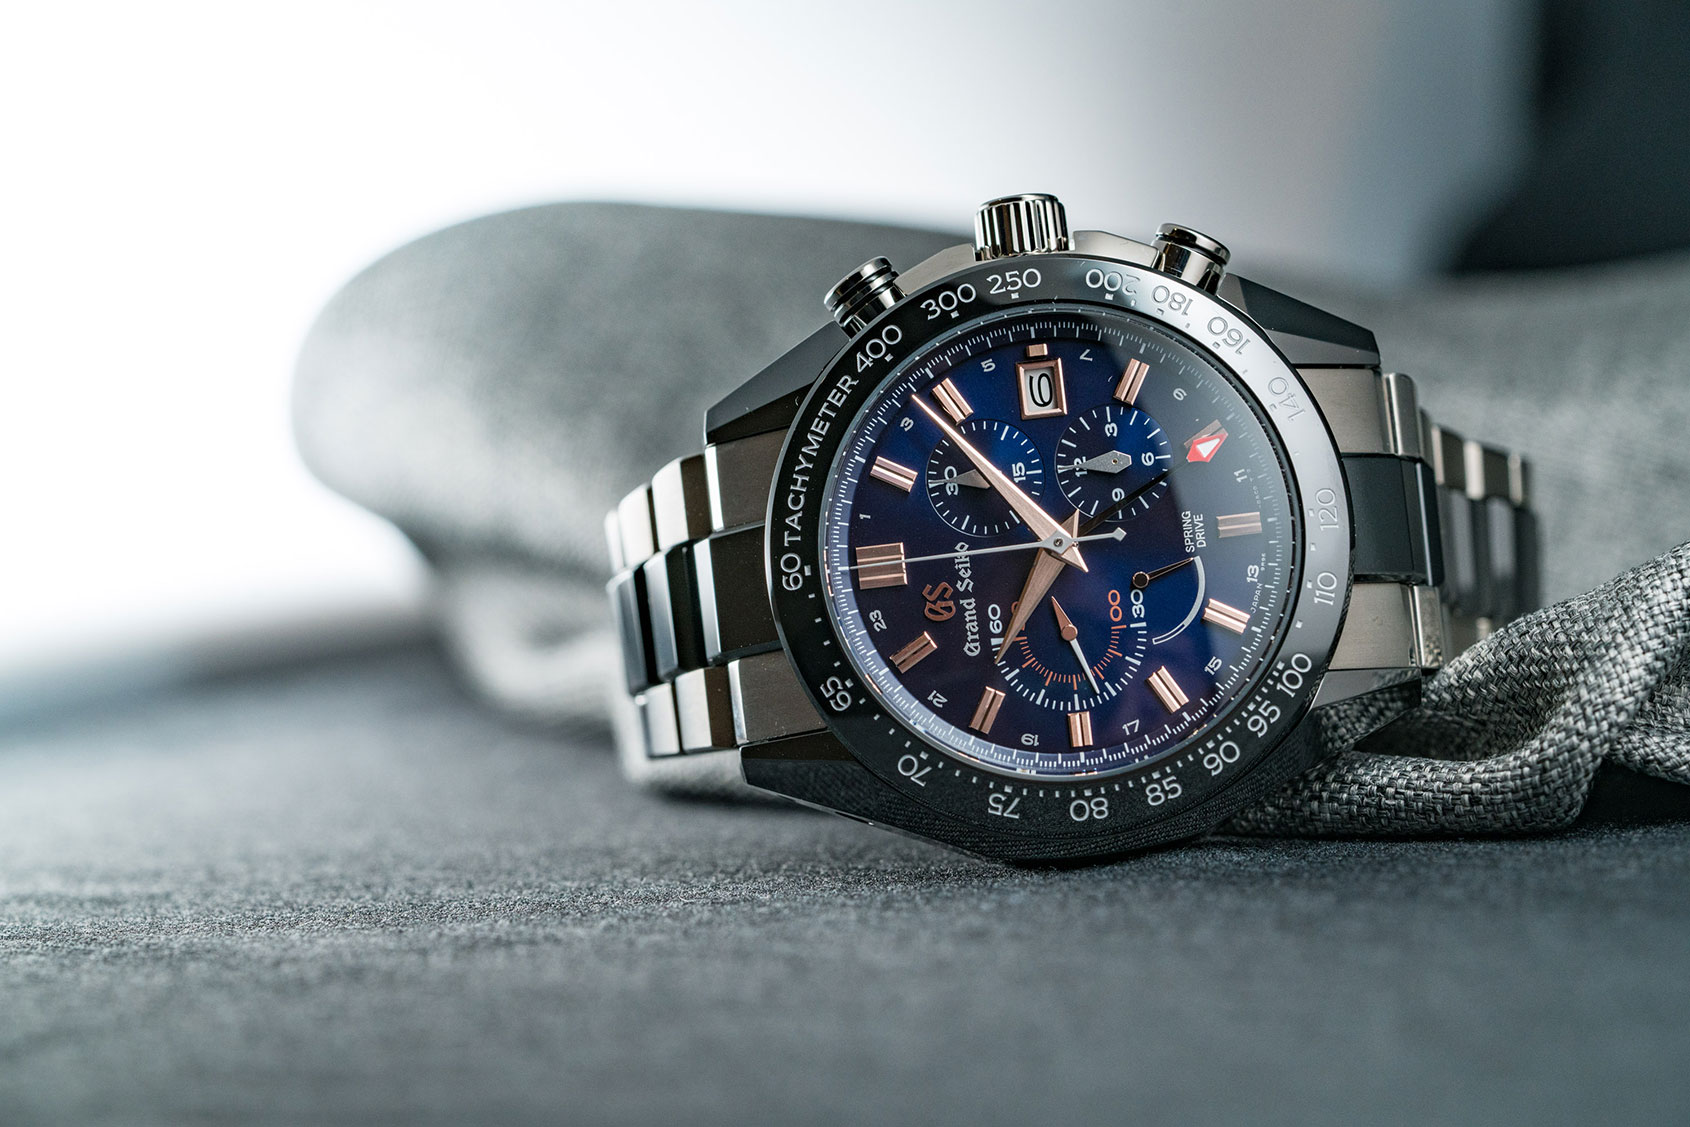 15c32c20c Last year Grand Seiko released a new-look, sporty, modular, ceramic and  titanium Spring Drive Chronograph. It was a bold change of pace for the  usually ...